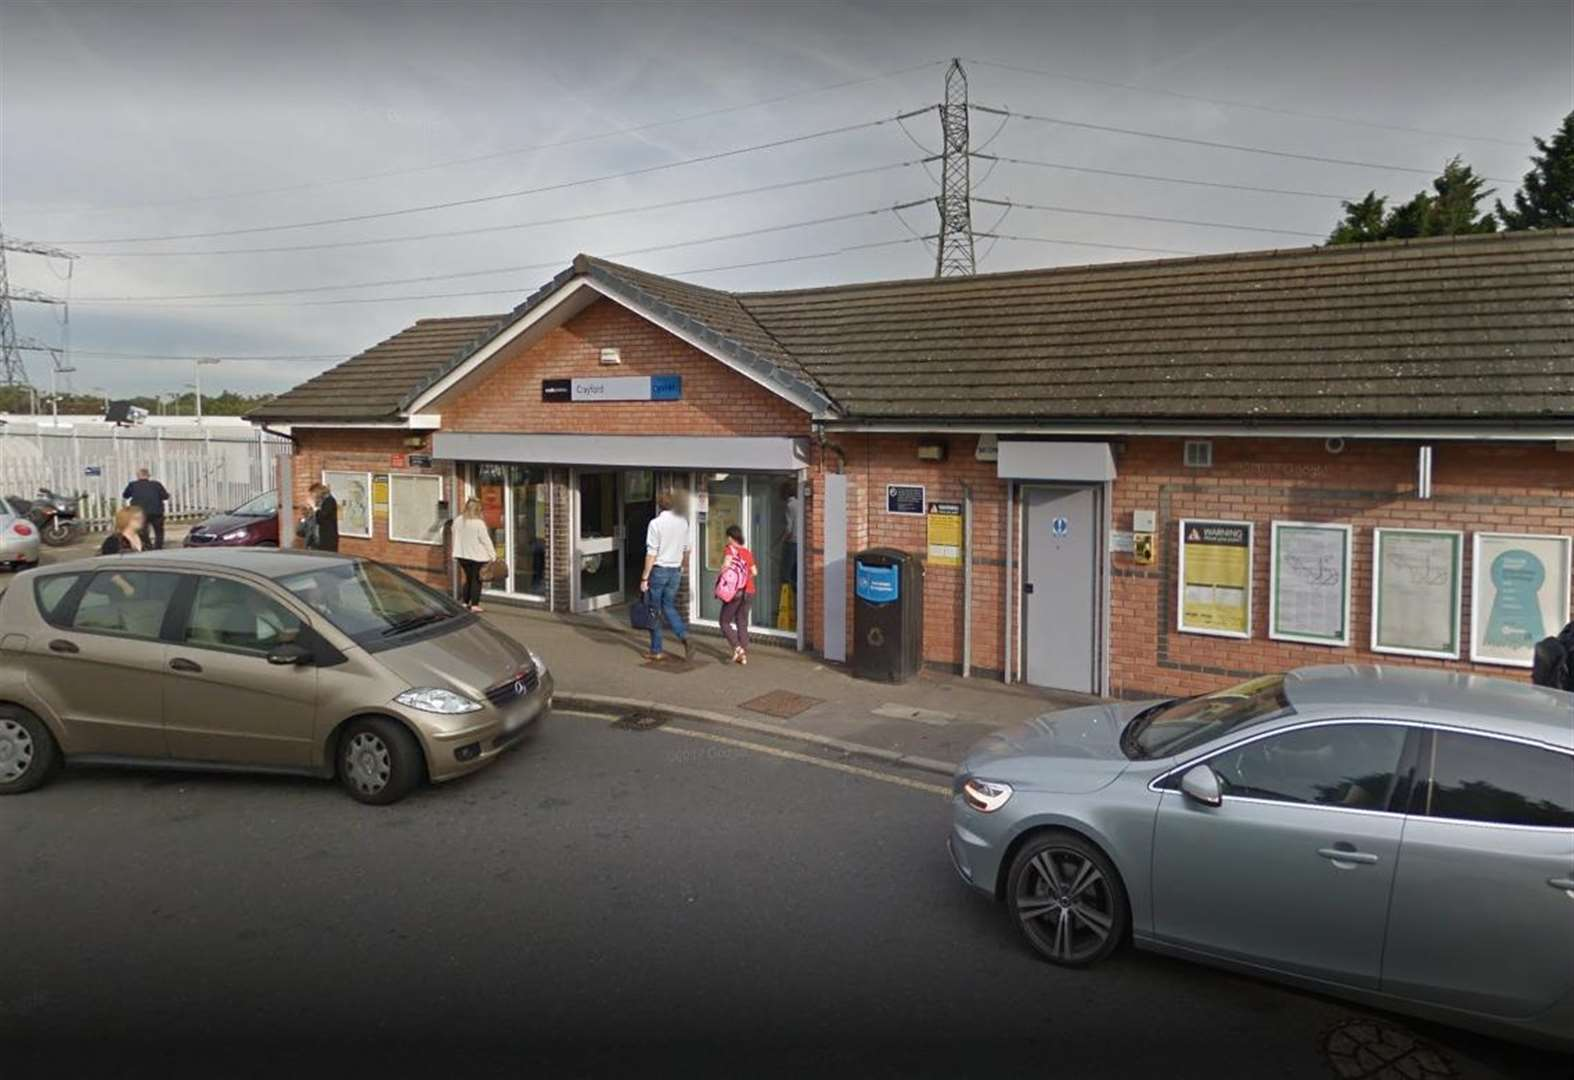 Armed police called to train station